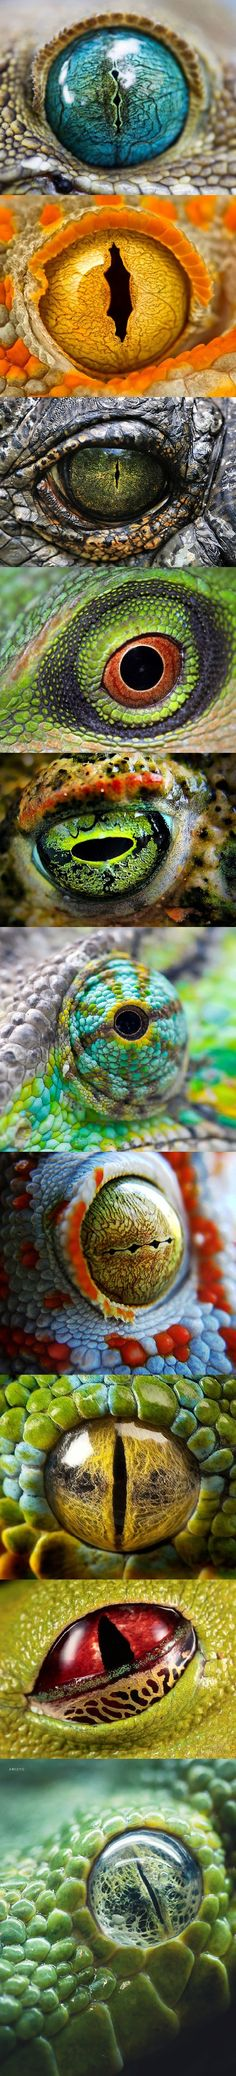 colorful animals | amazing collection | eyes via @lostquilt                                                                                                                                                     More